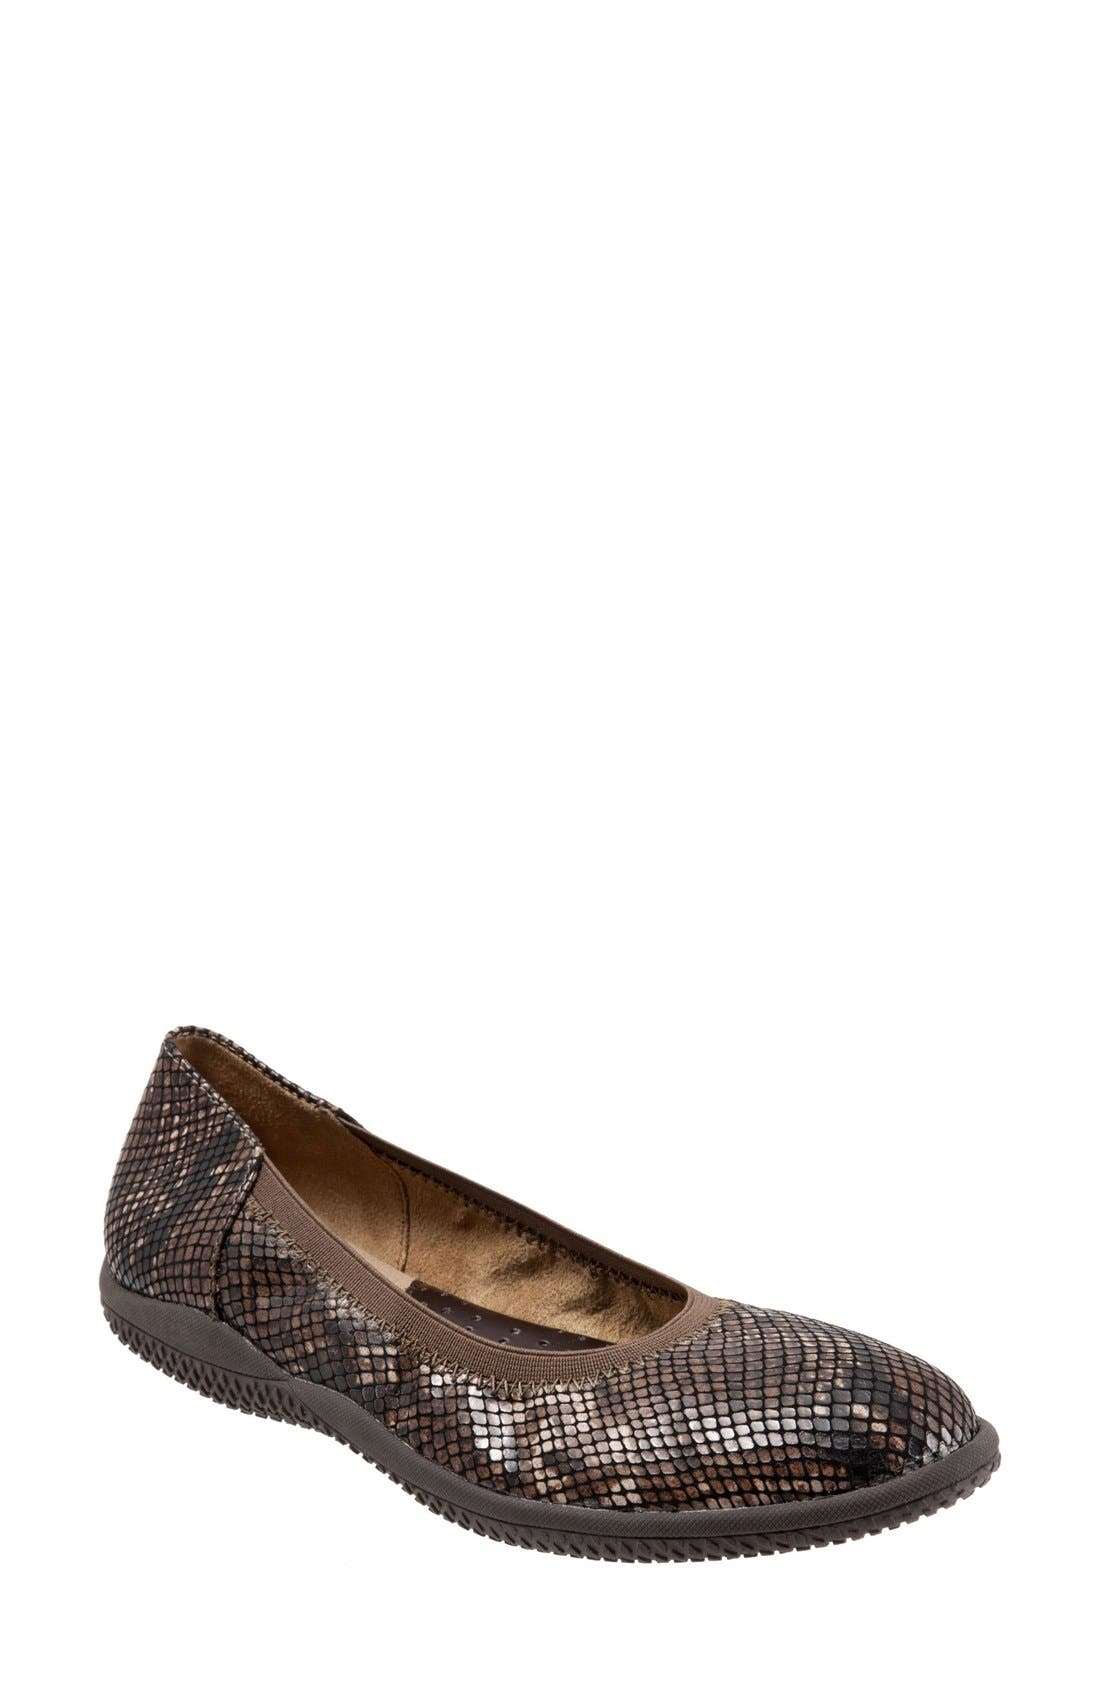 SOFTWALK<SUP>®</SUP> 'Hampshire' Dot Perforated Ballet Flat, Main, color, BROWN PYTHON PRINT LEATHER